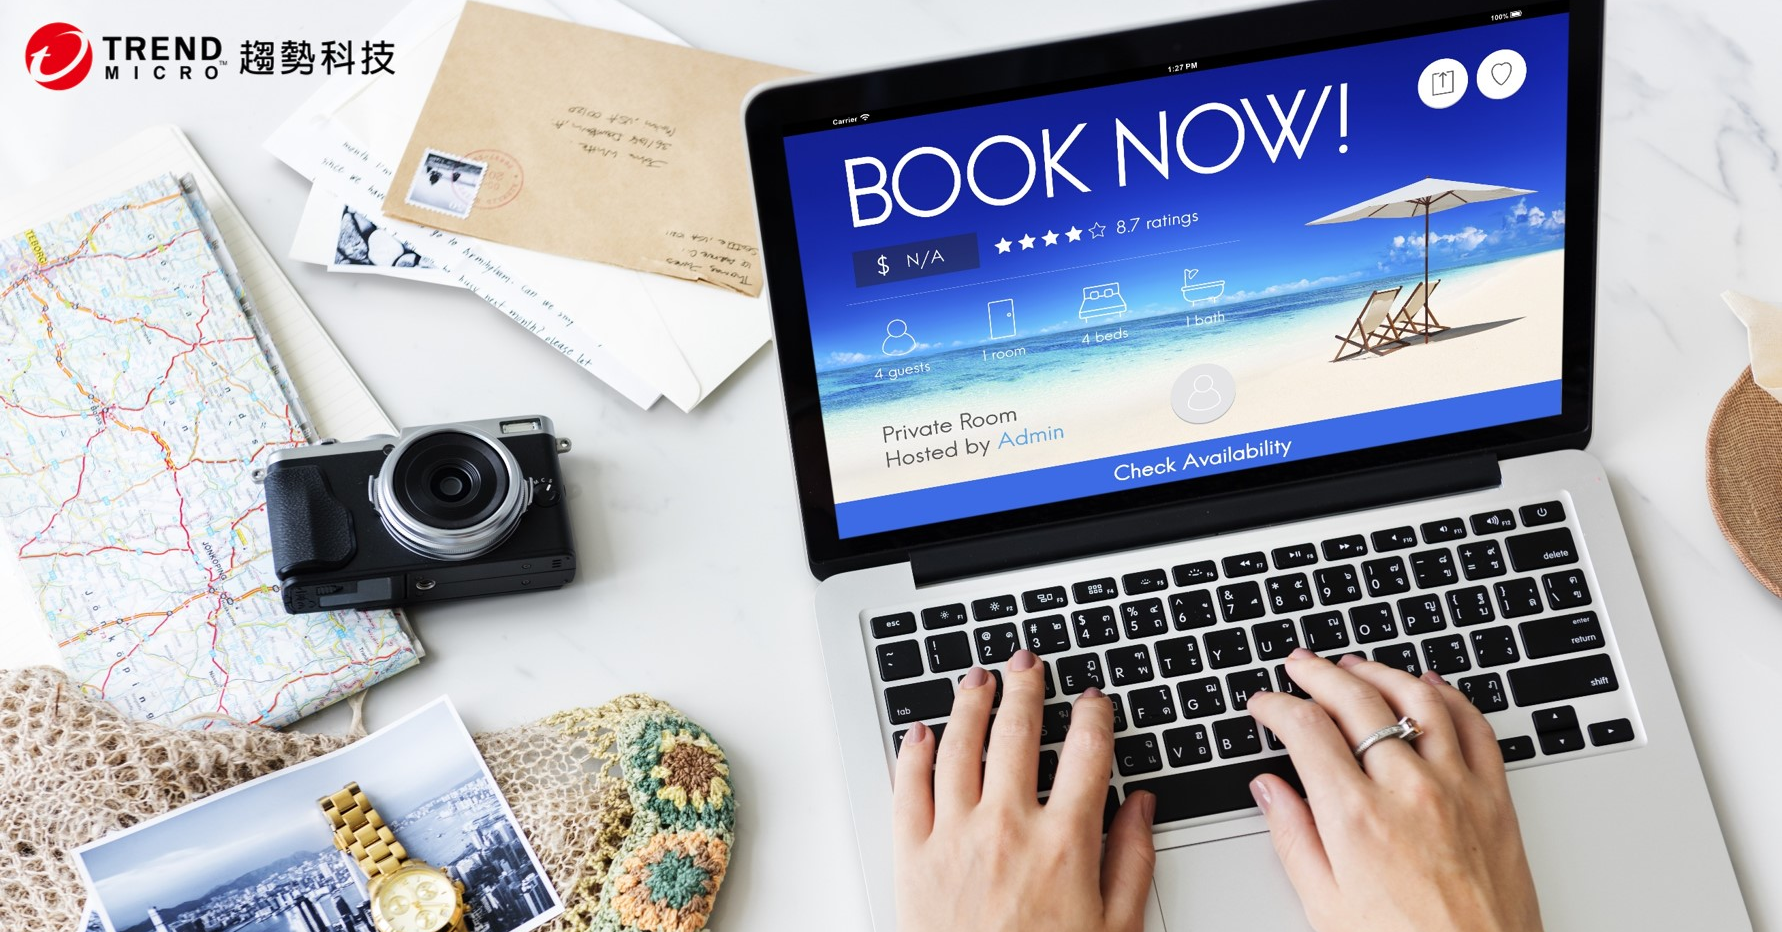 Travel website, Airline ticket, Booking.com, , Event Tickets, Travel, Hotel, Stock photography, Travel Agent, Image, booking ticket, product, product, multimedia, technology, website, electronic device, gadget, brand, computer hardware